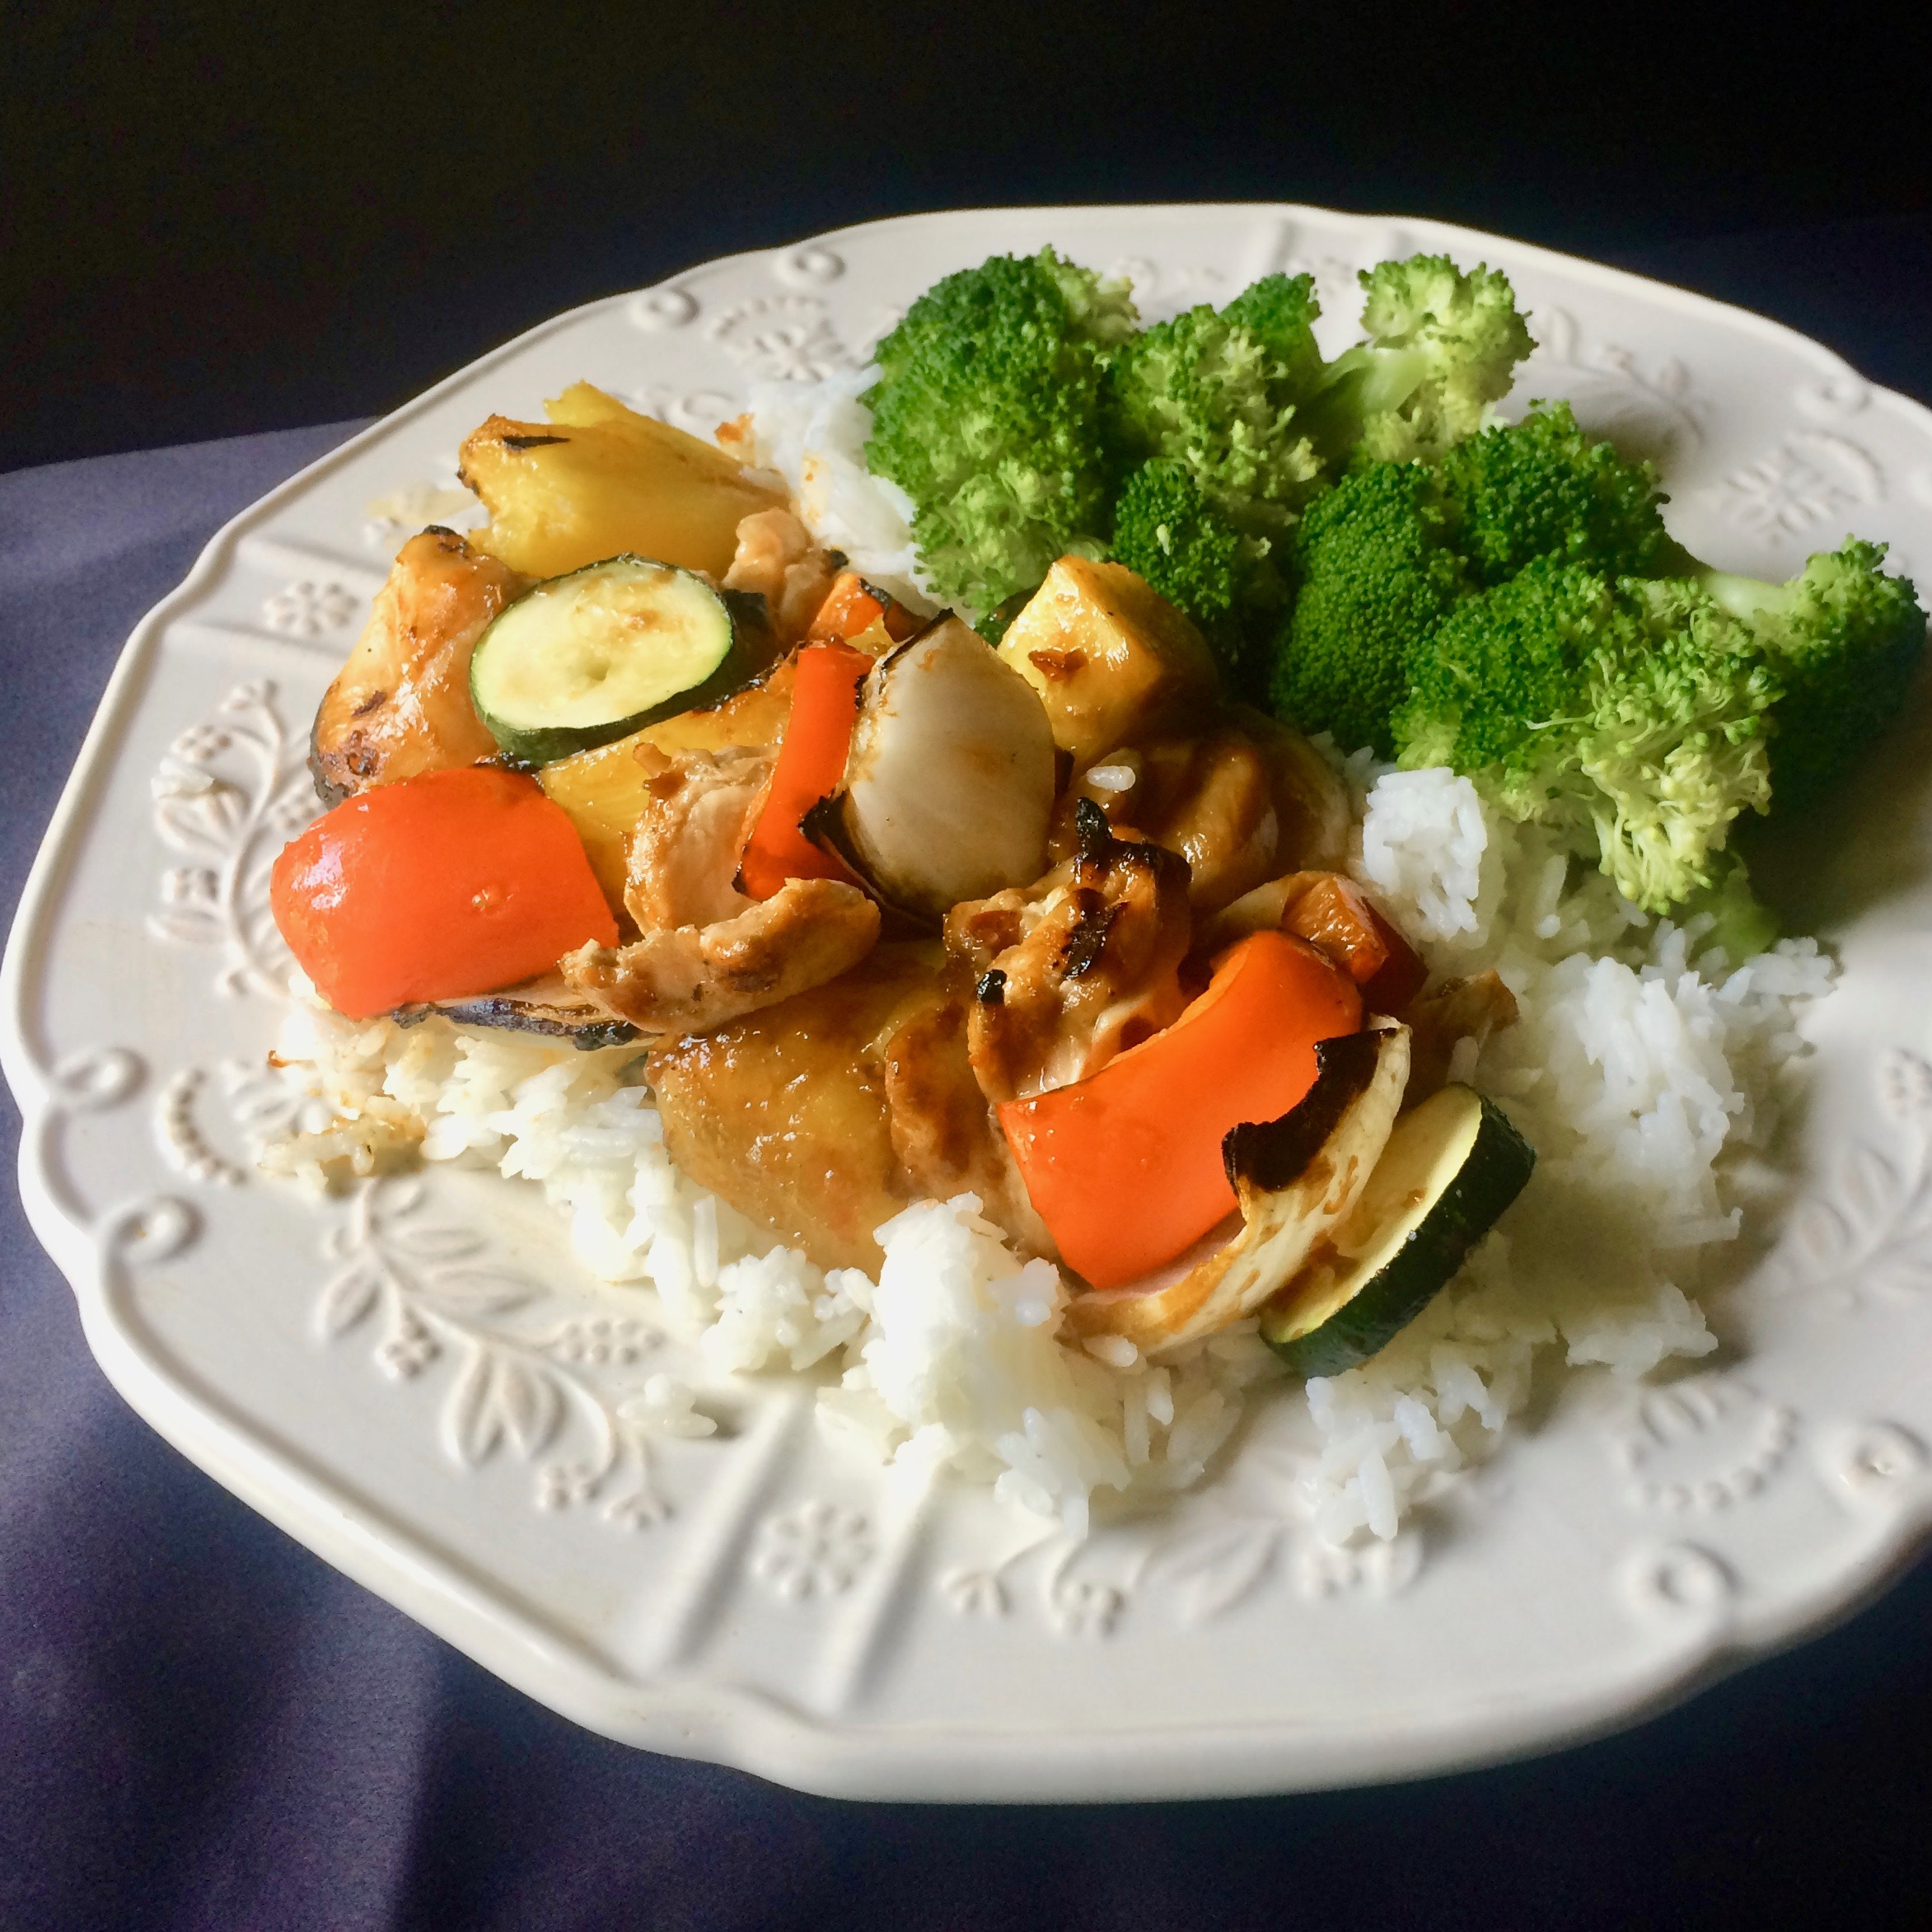 Grilled Orange Chicken Thigh Skewers with Pineapple and Vegetables